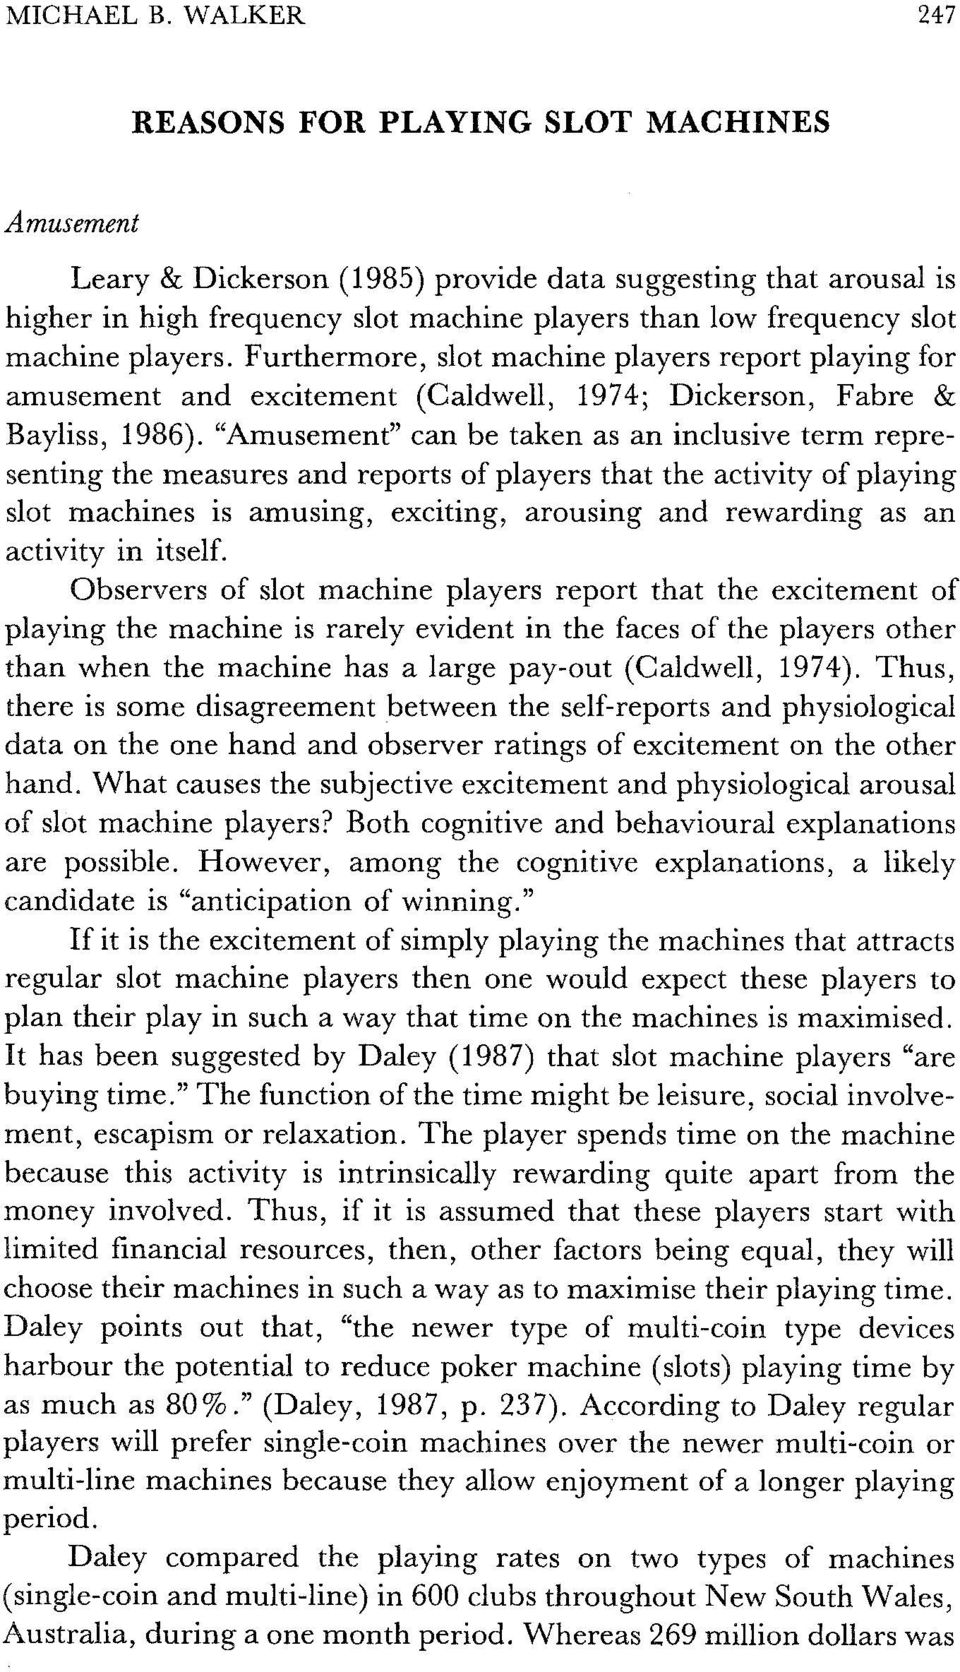 players. Furthermore, slot machine players report playing for amusement and excitement (Caldwell, 1974; Dickerson, Fabre & Bayliss, 1986).